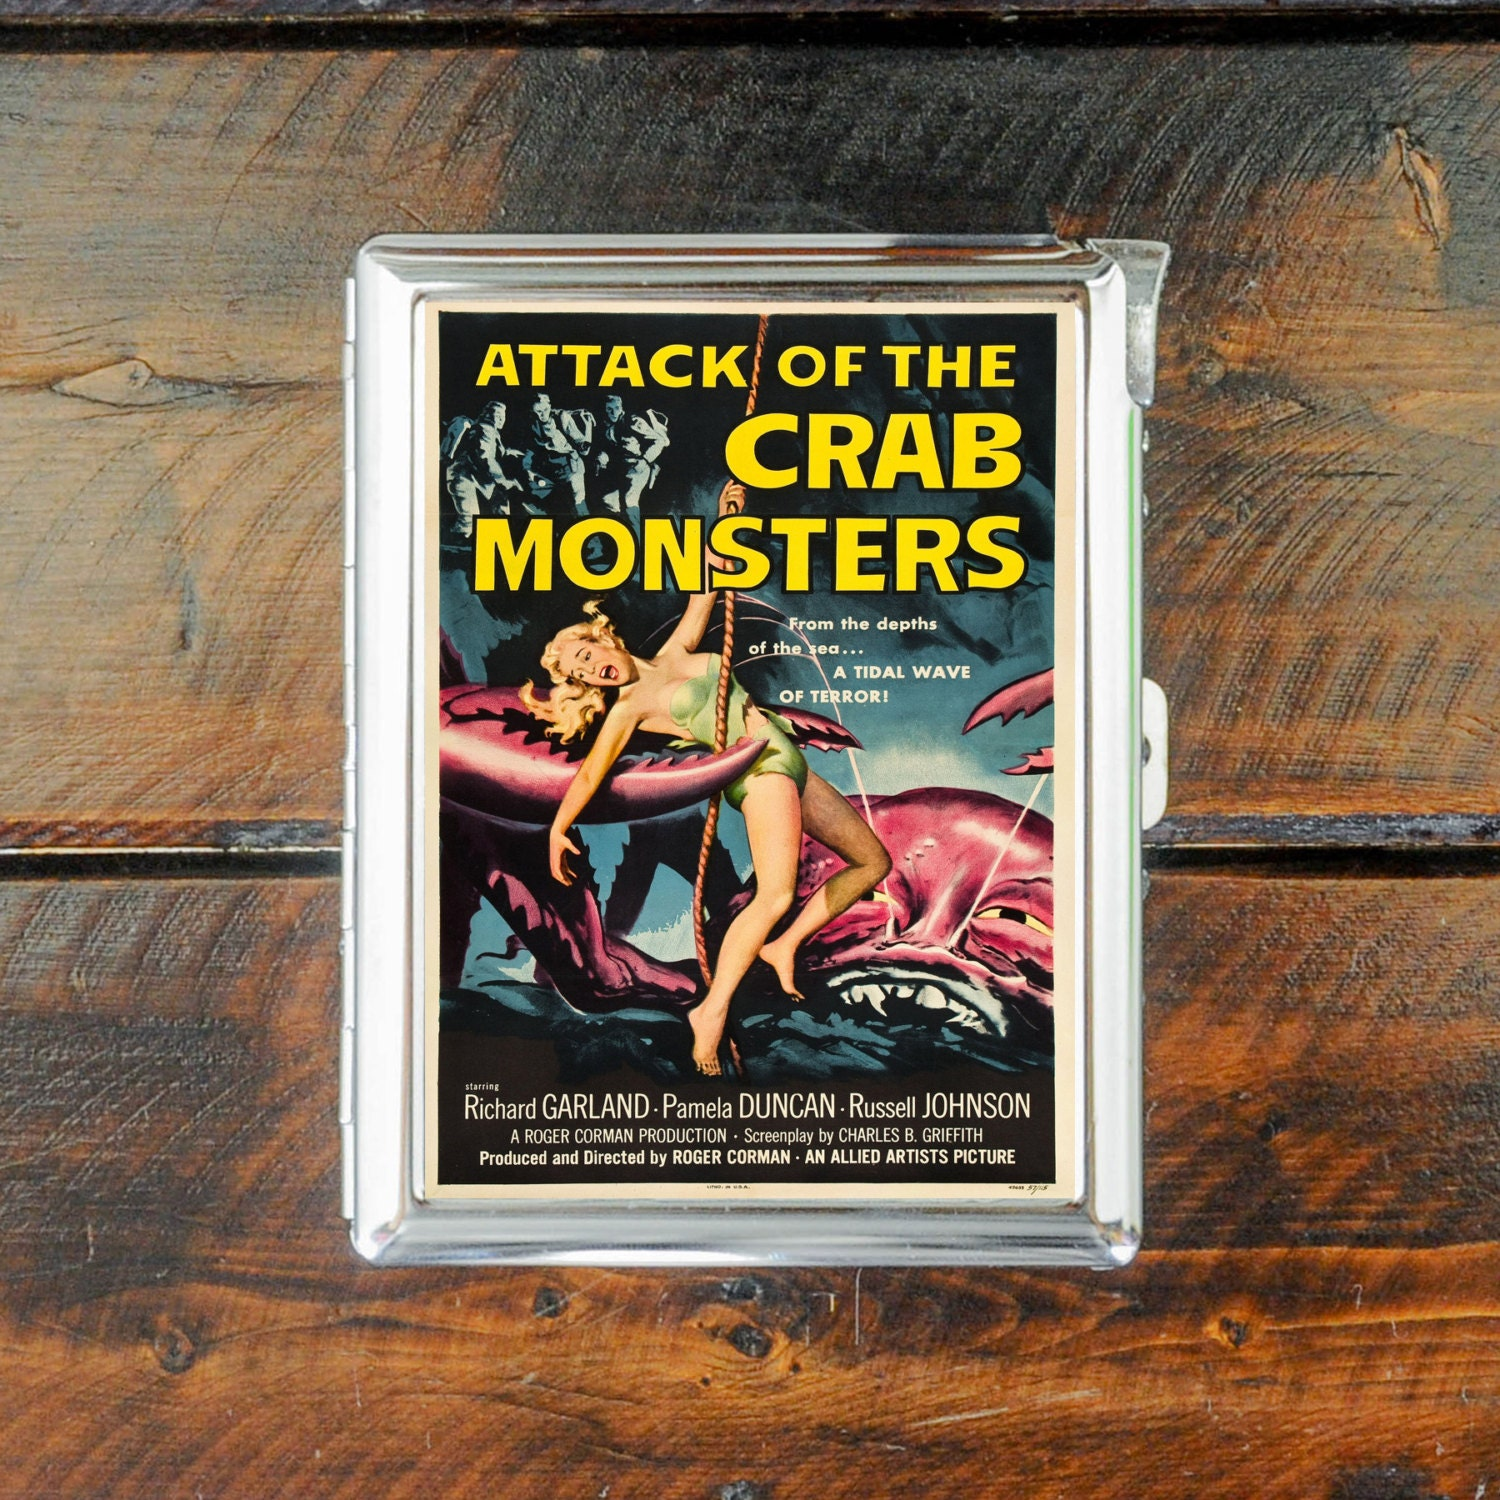 cigarette case MOVIE cinema poster attack of the crab monsters